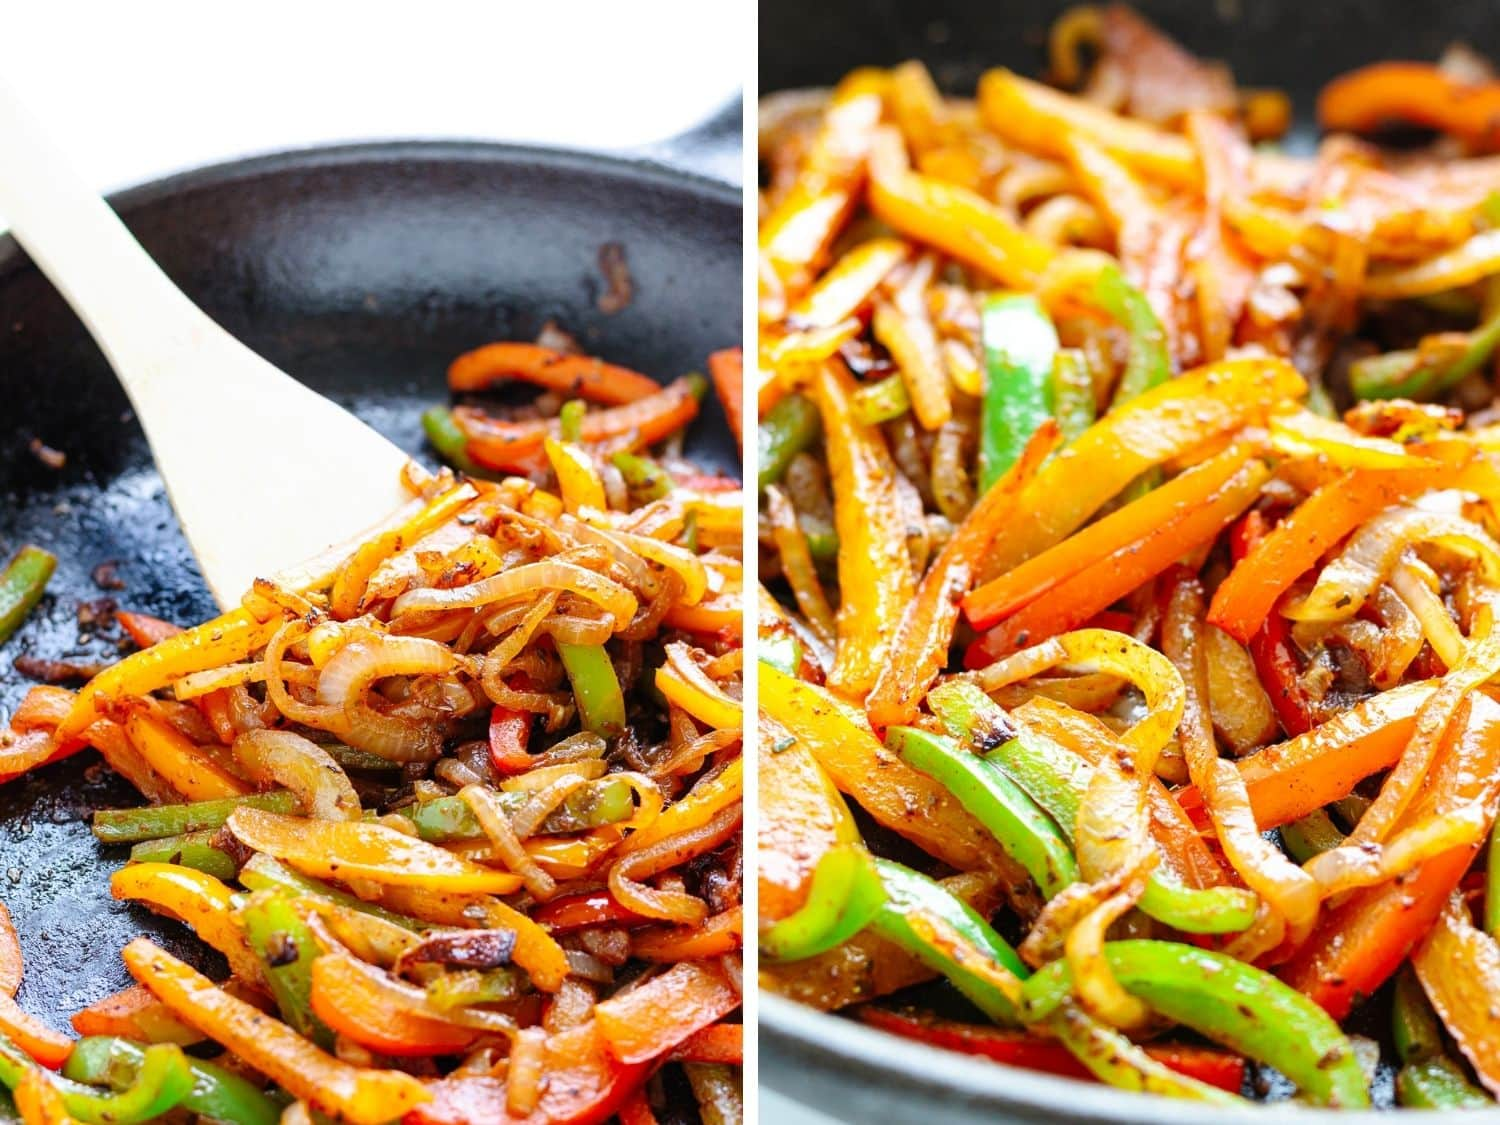 Collage of two photos showing fajita vegetables being cooked in a cast iron pan.